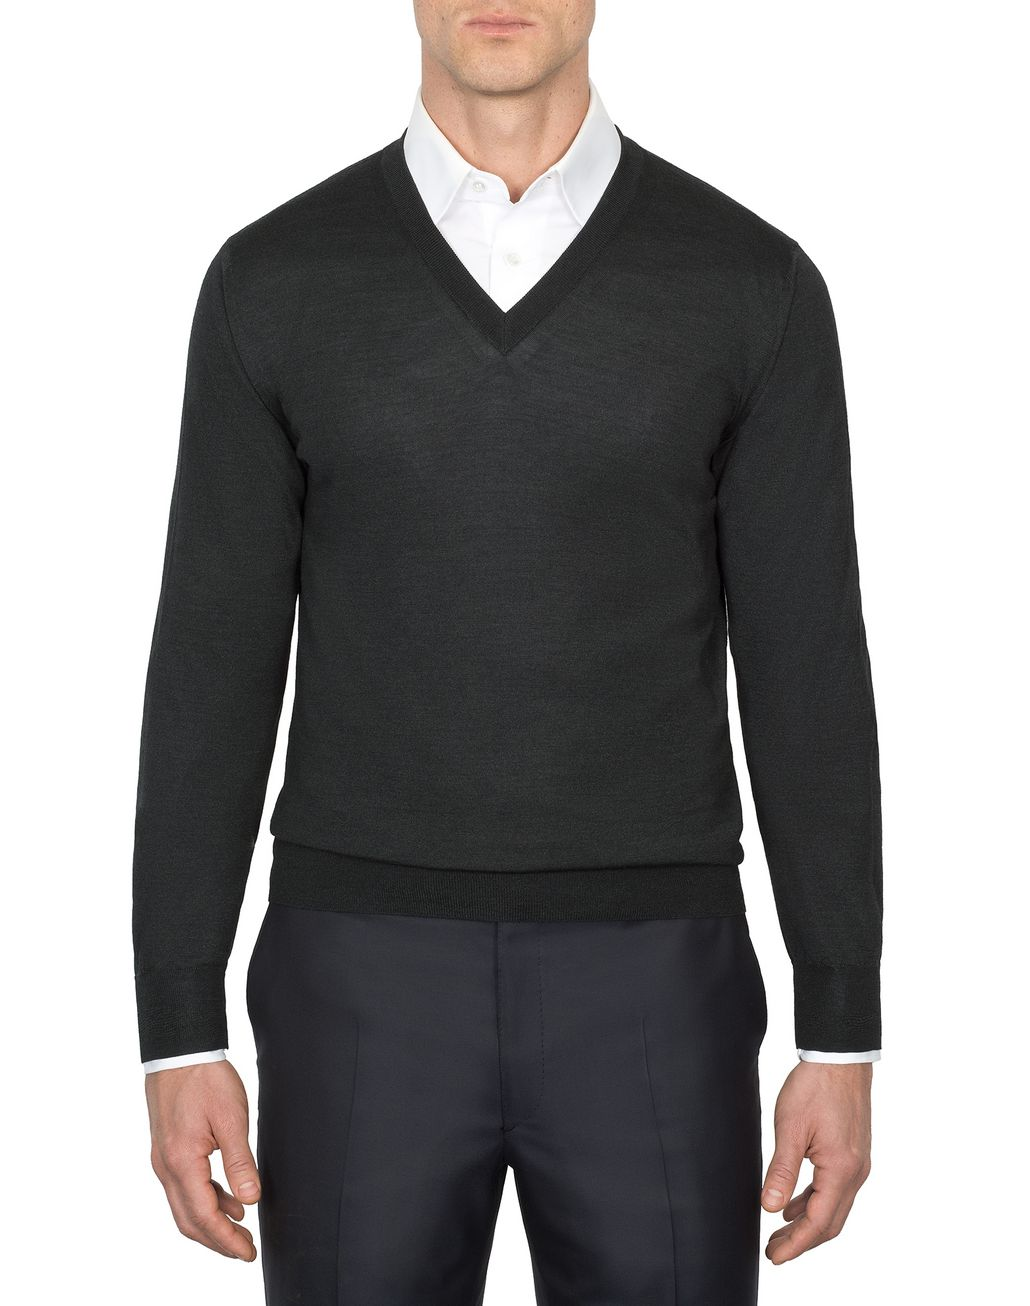 BRIONI 'Essential' Grey V-Neck Sweater Knitwear Man r